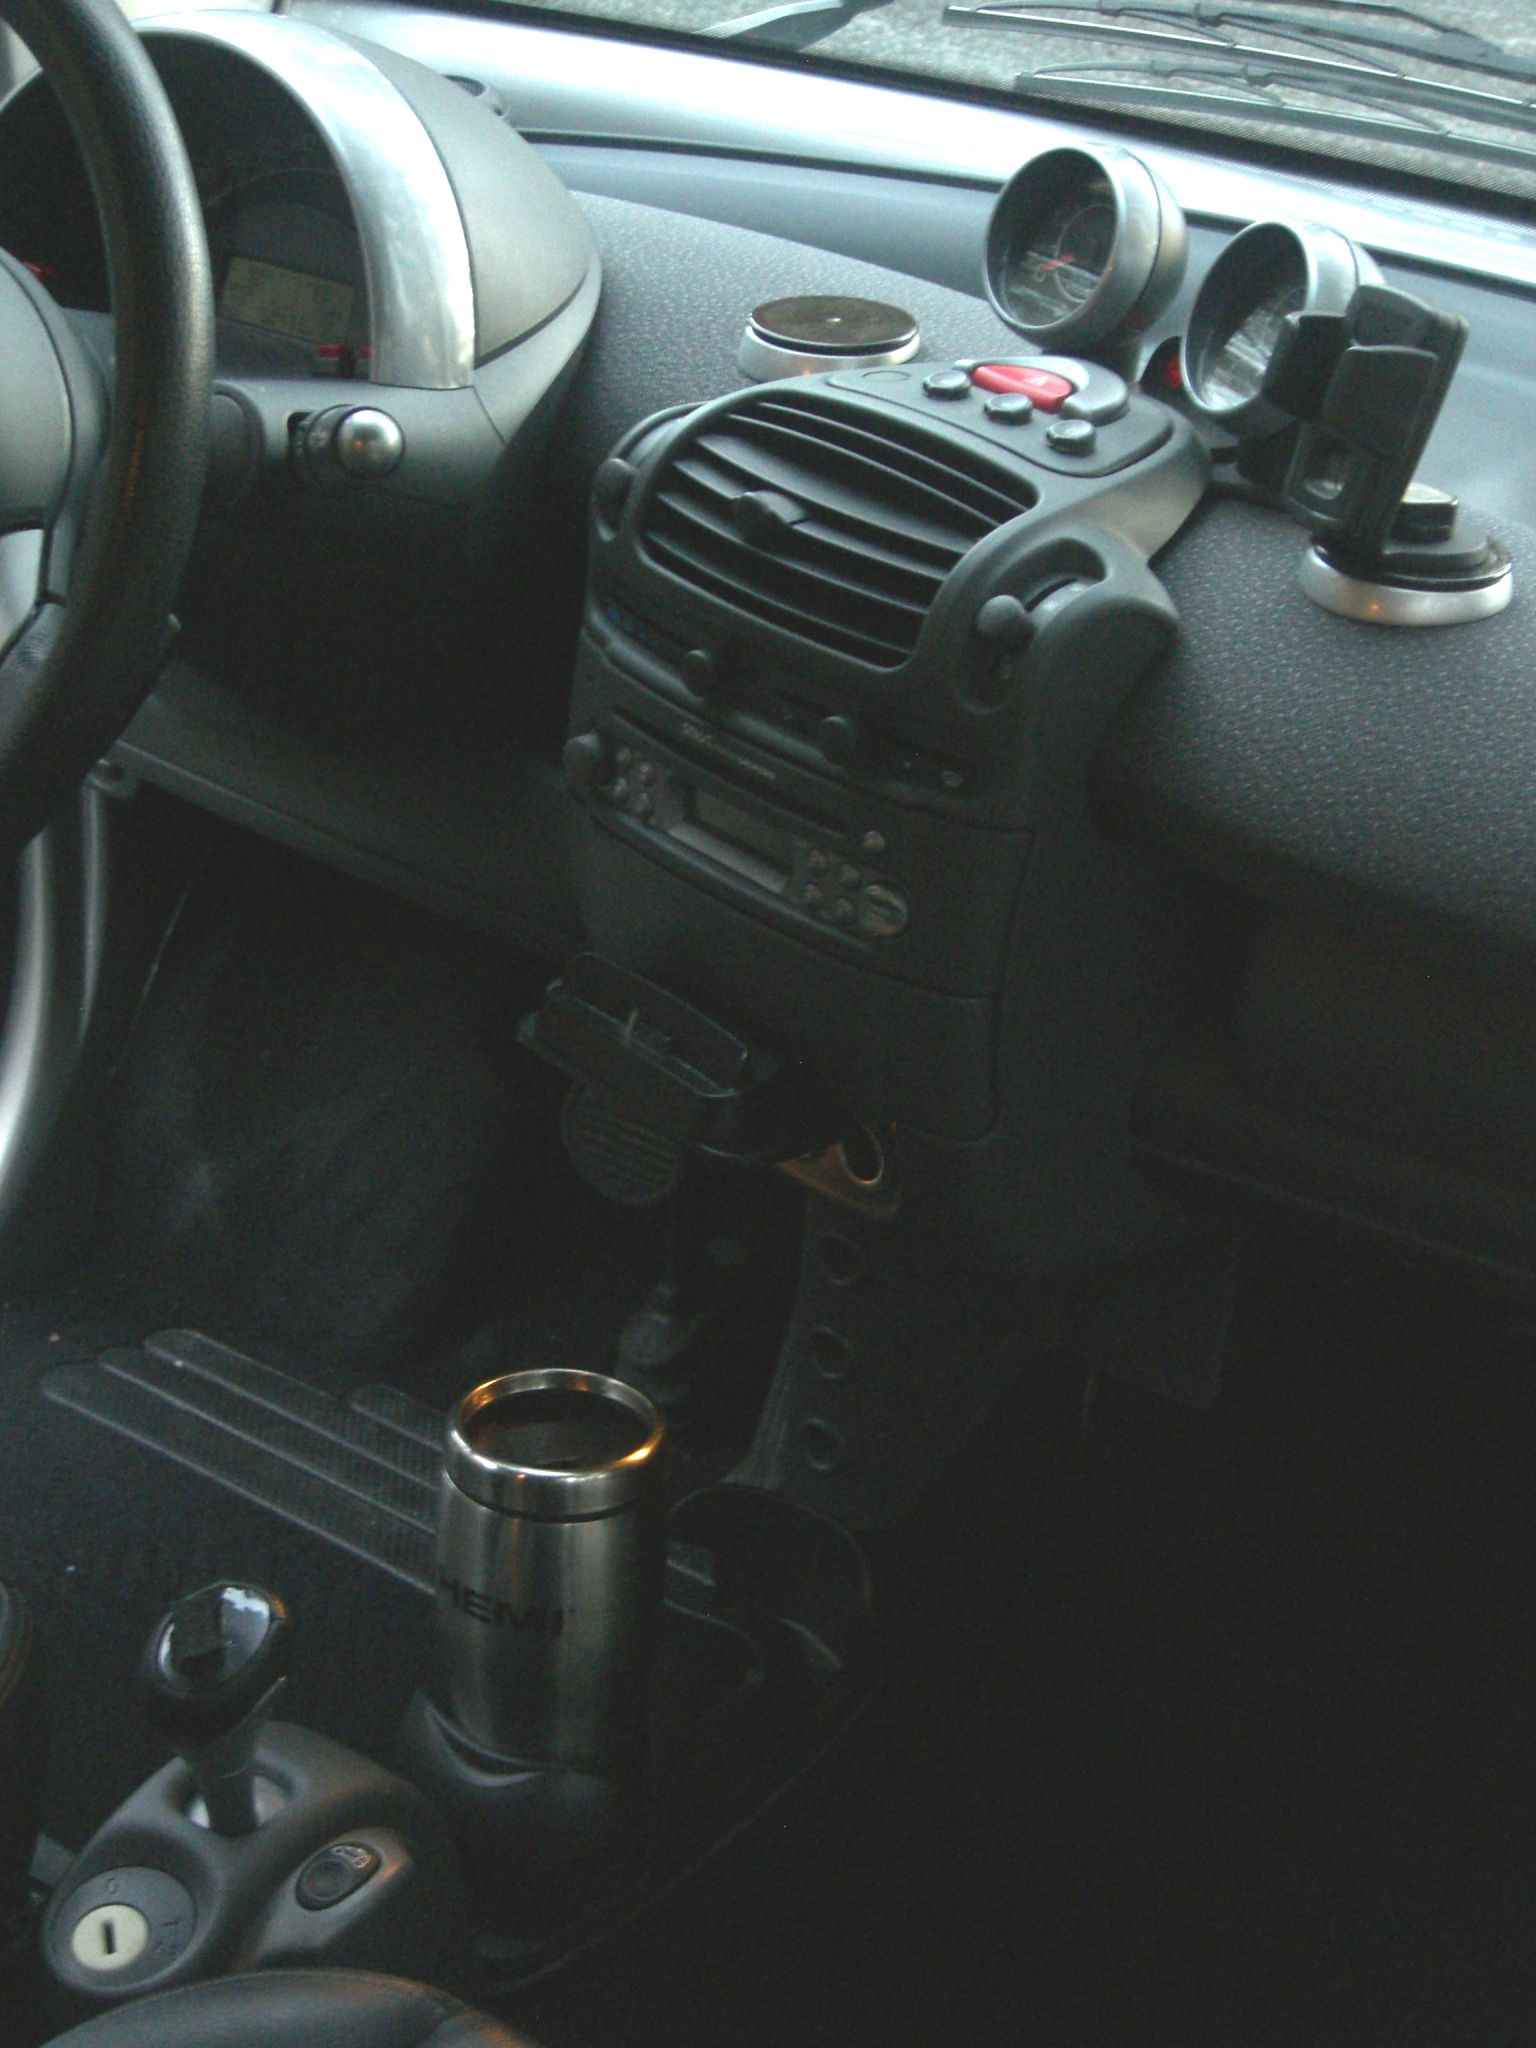 gps/Ipod mounting discs - How-To: 450 Model, 2005-2006